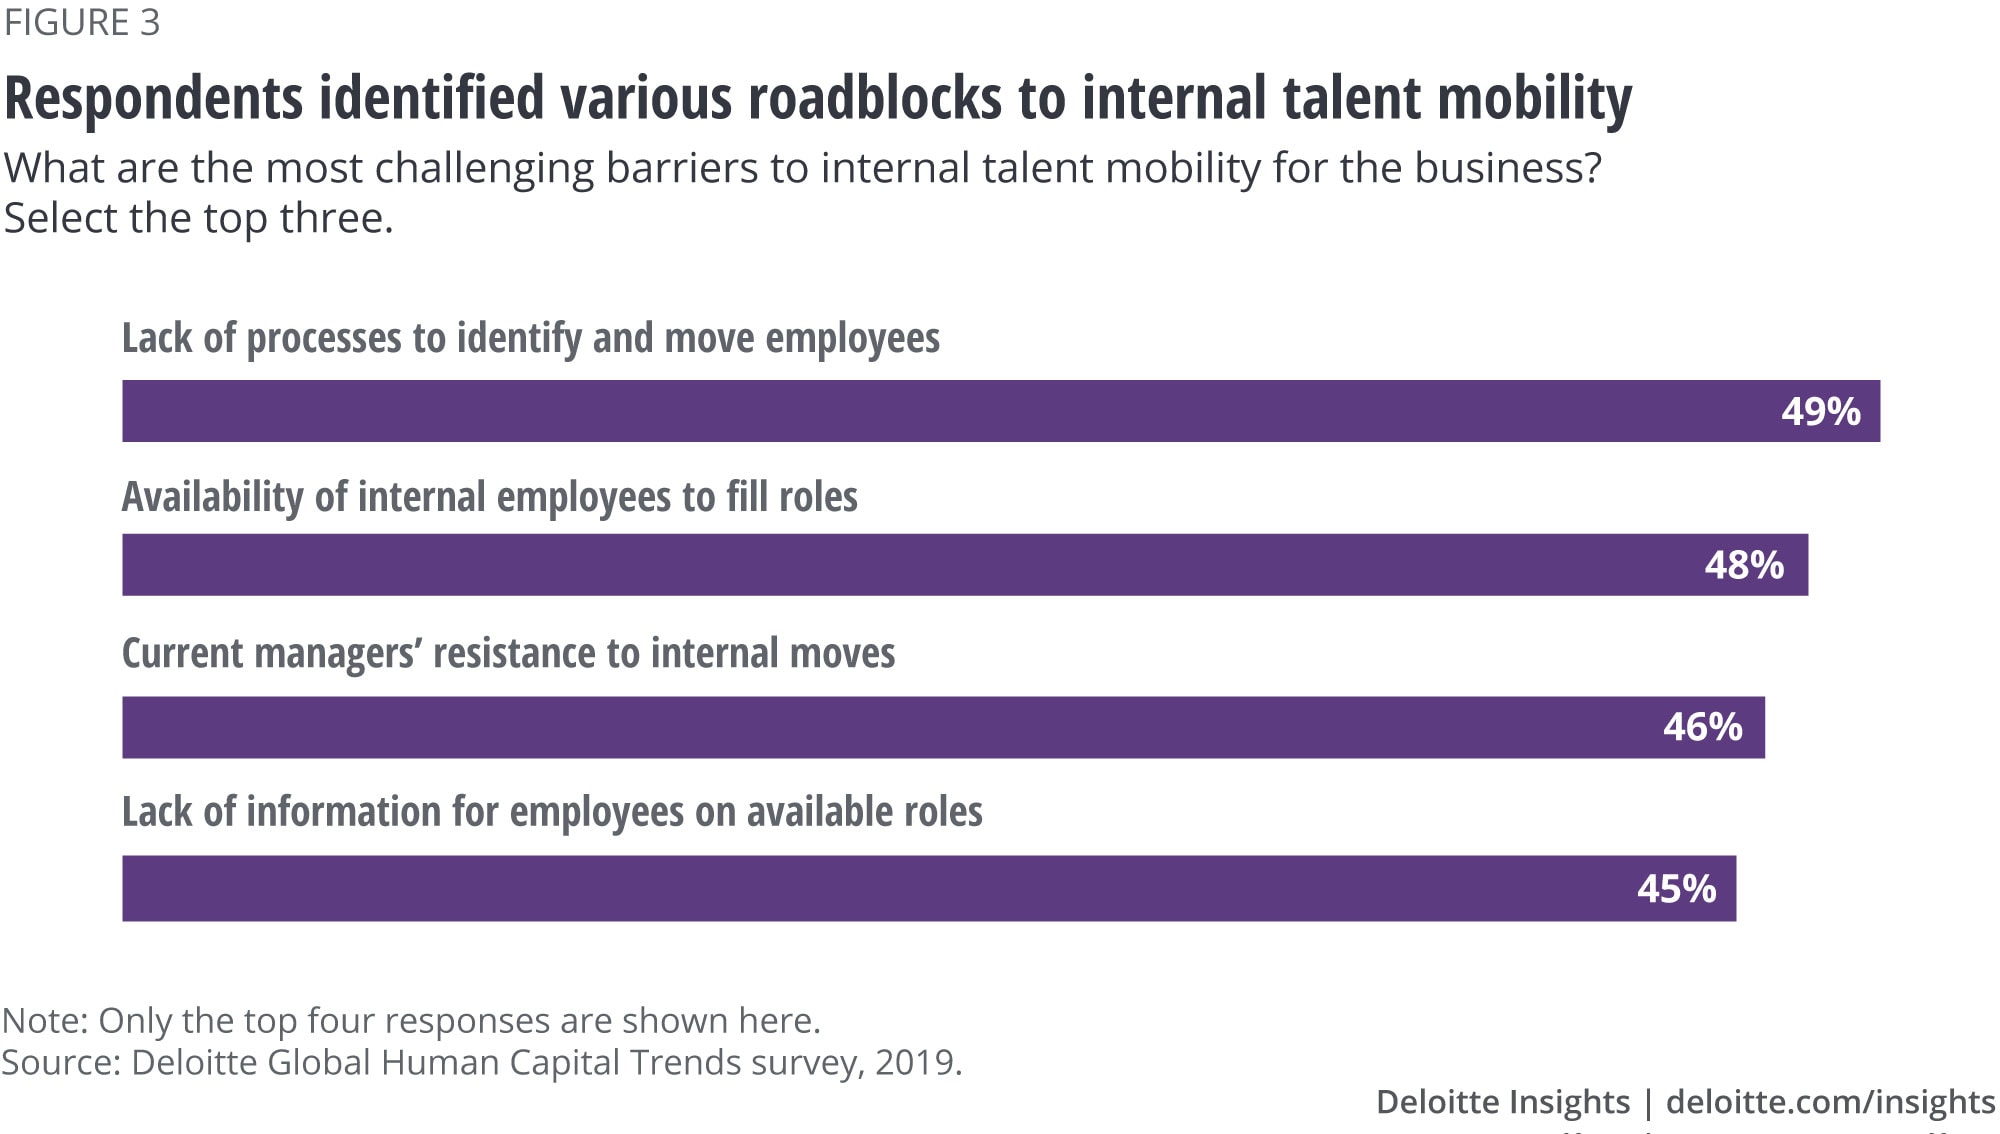 Respondents identified various roadblocks to internal talent mobility